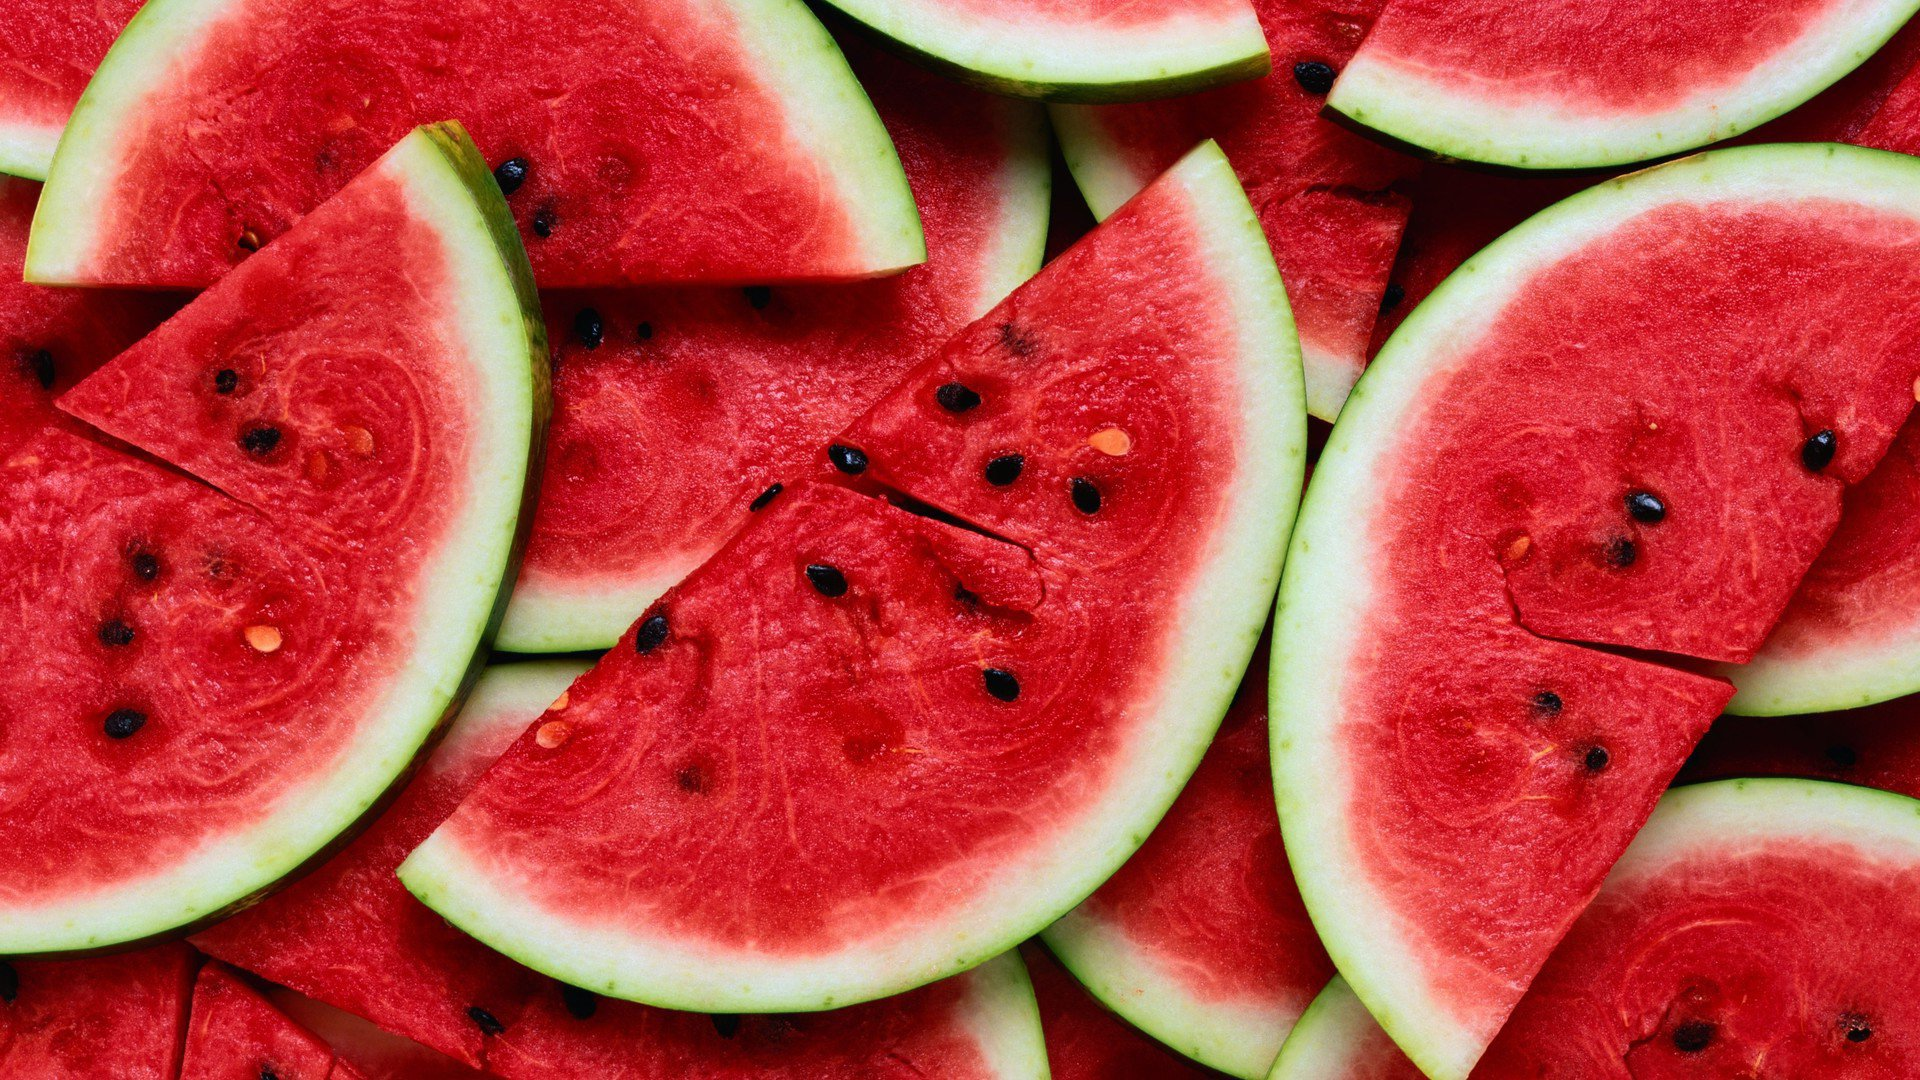 Watermelon Hd Wallpaper Pictures New Wallpapers